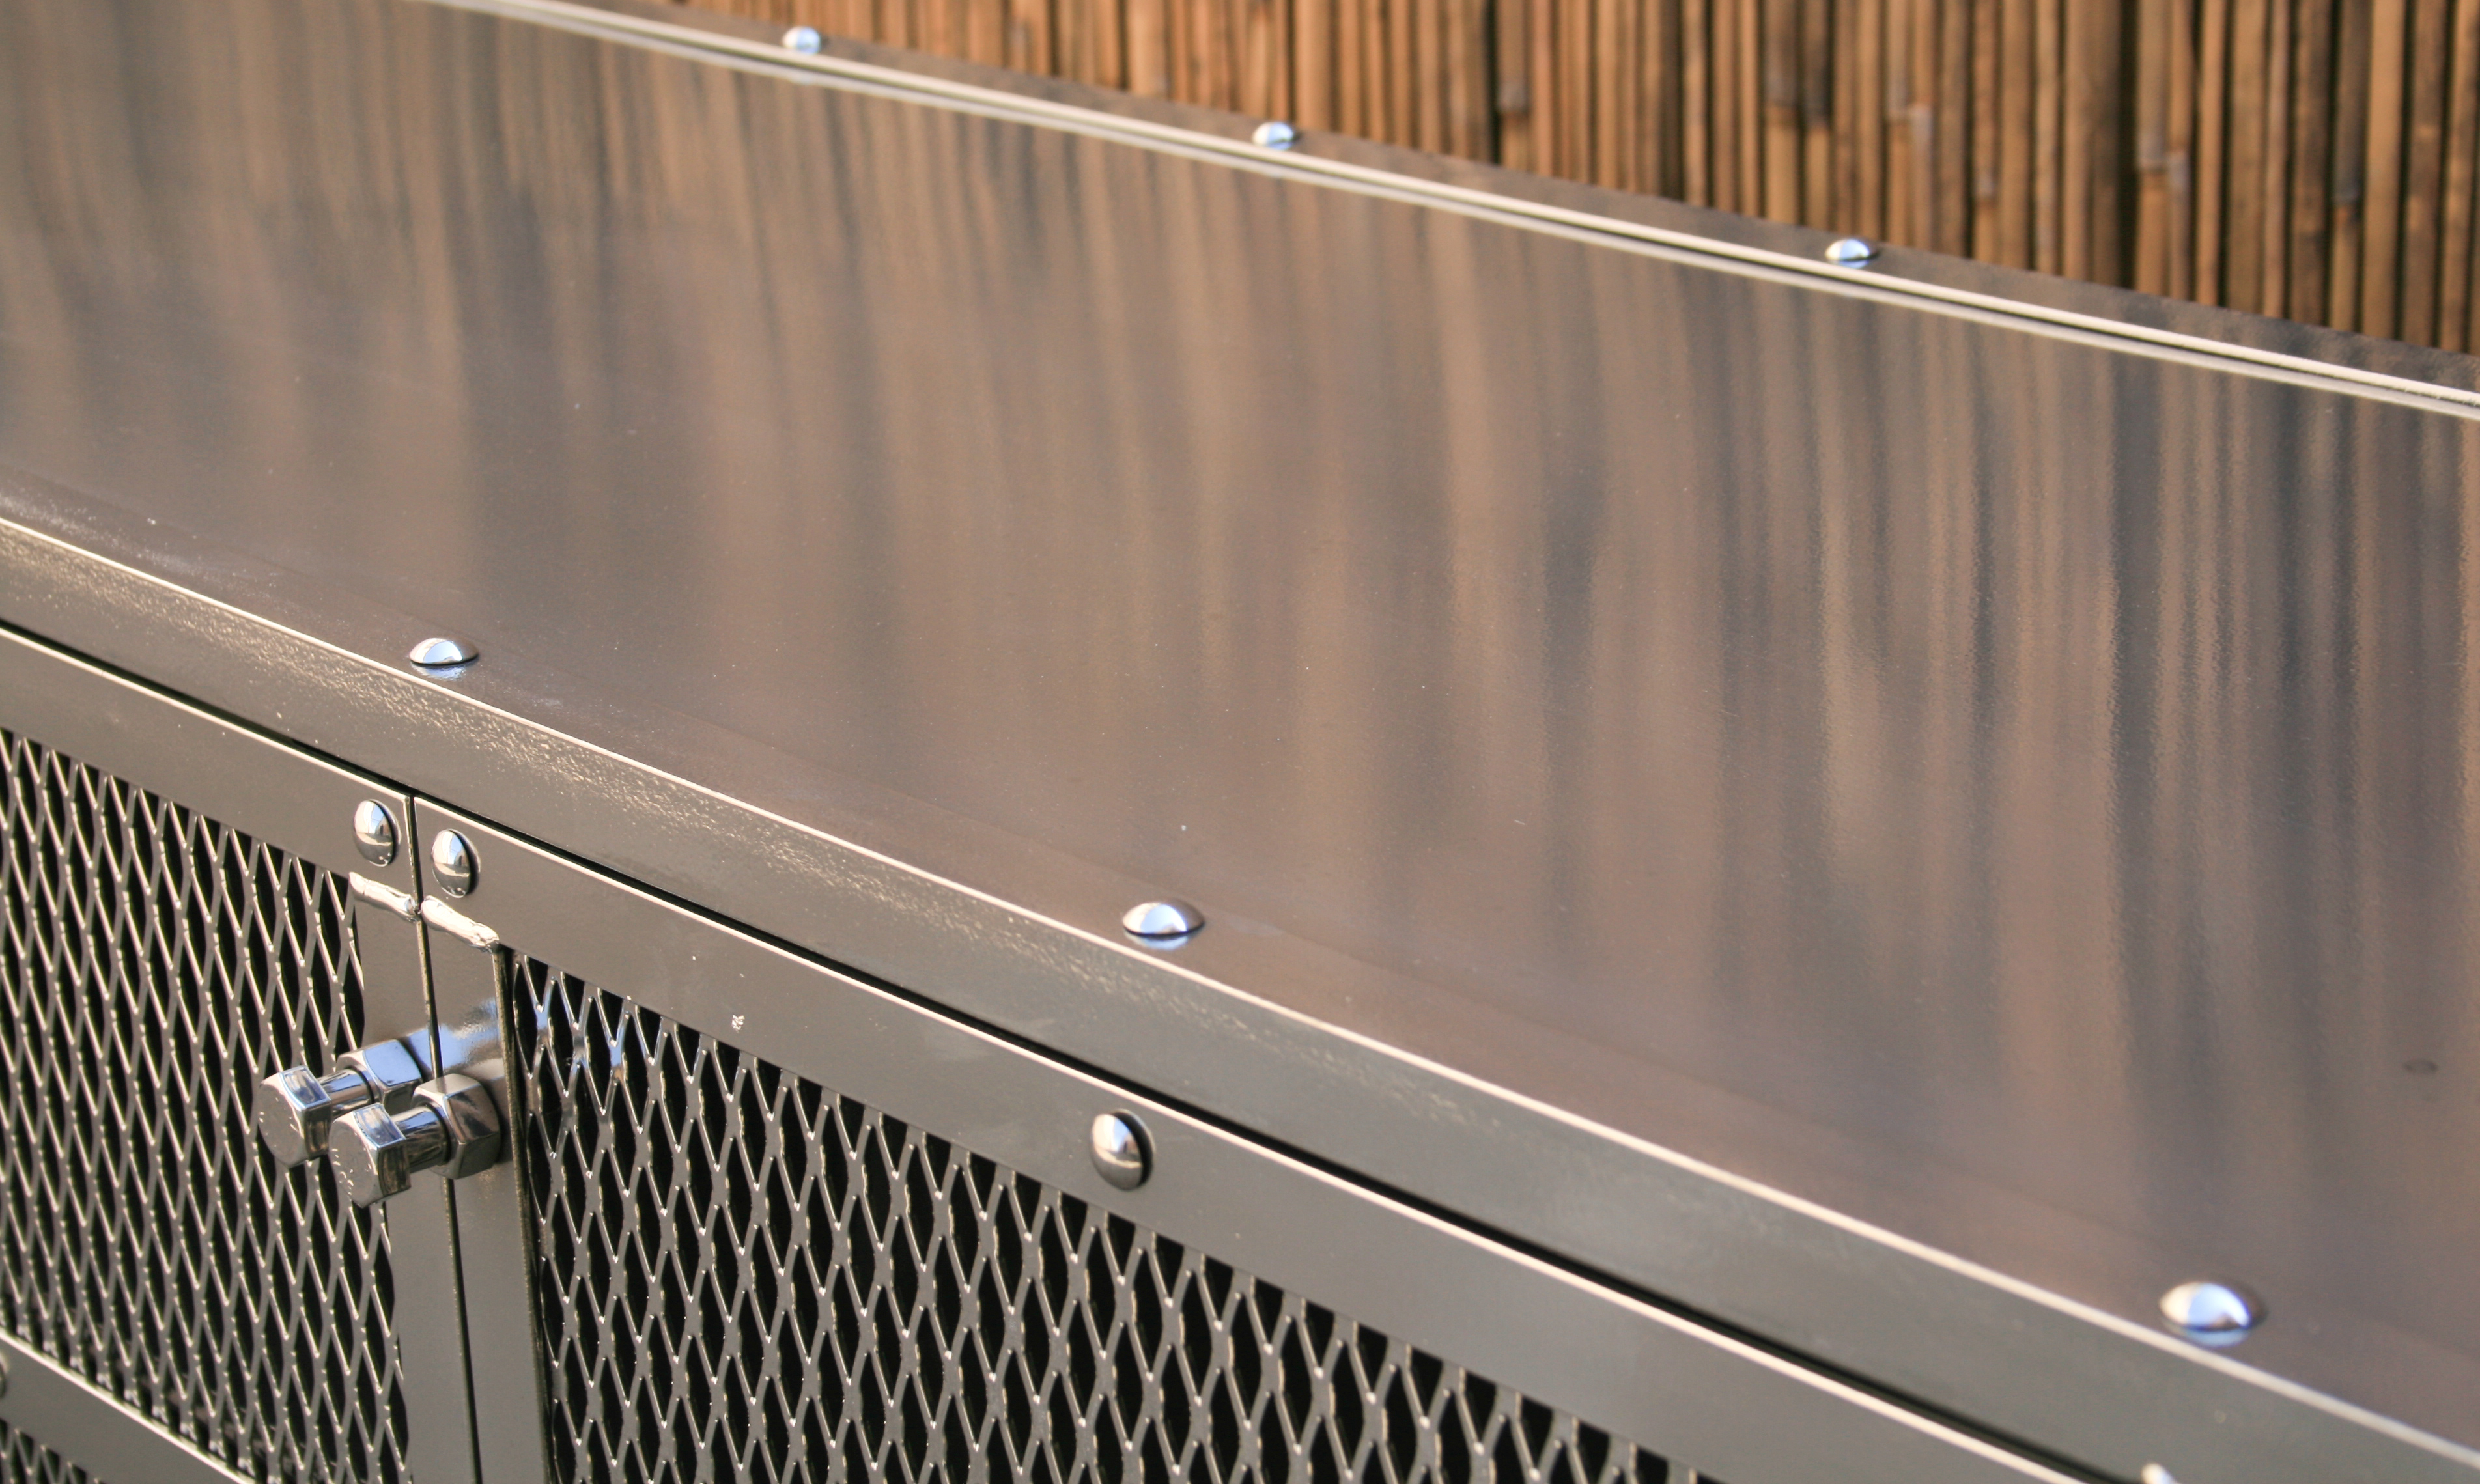 Chrome Credenza Perfect for Patios or Outdoor Bars